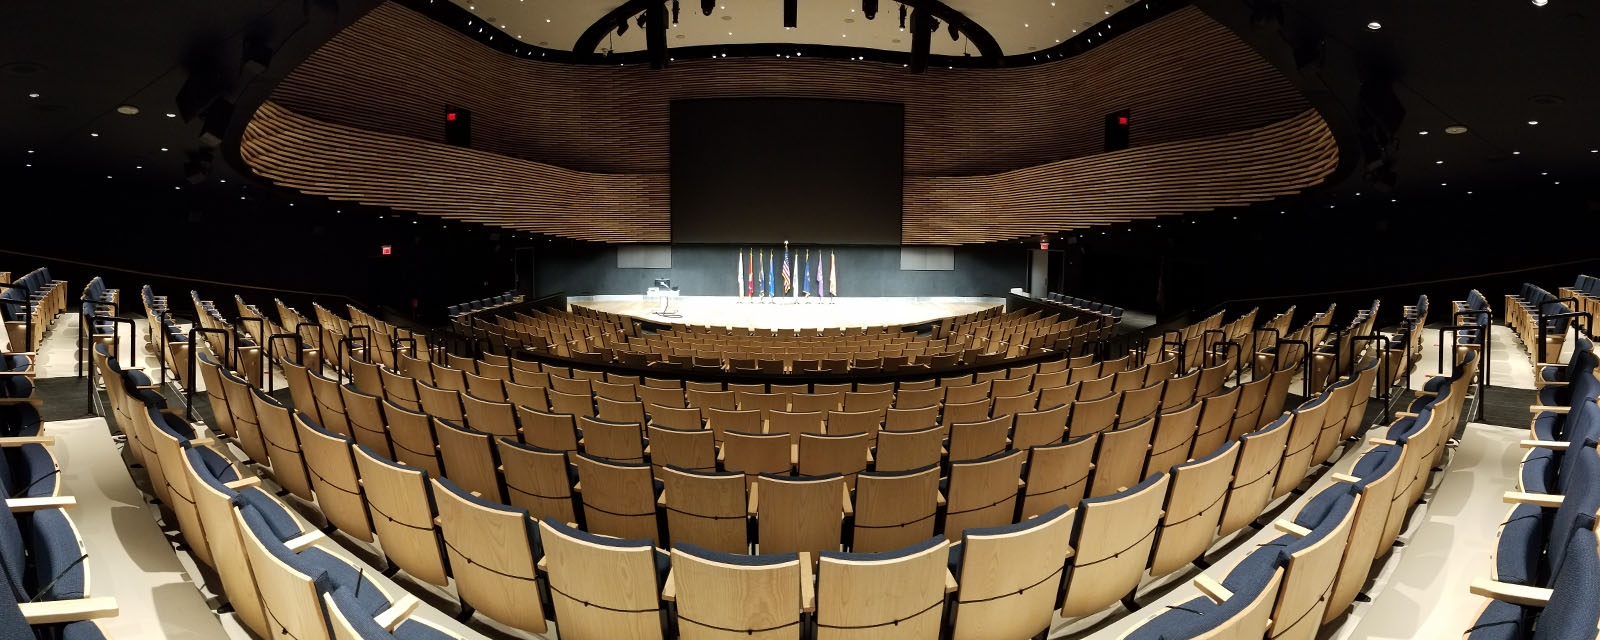 Panorama of KG Tan Auditorium from the students view. There  is a stage with an ADA complaint Teaching station to the left. There is two tiers of seating.